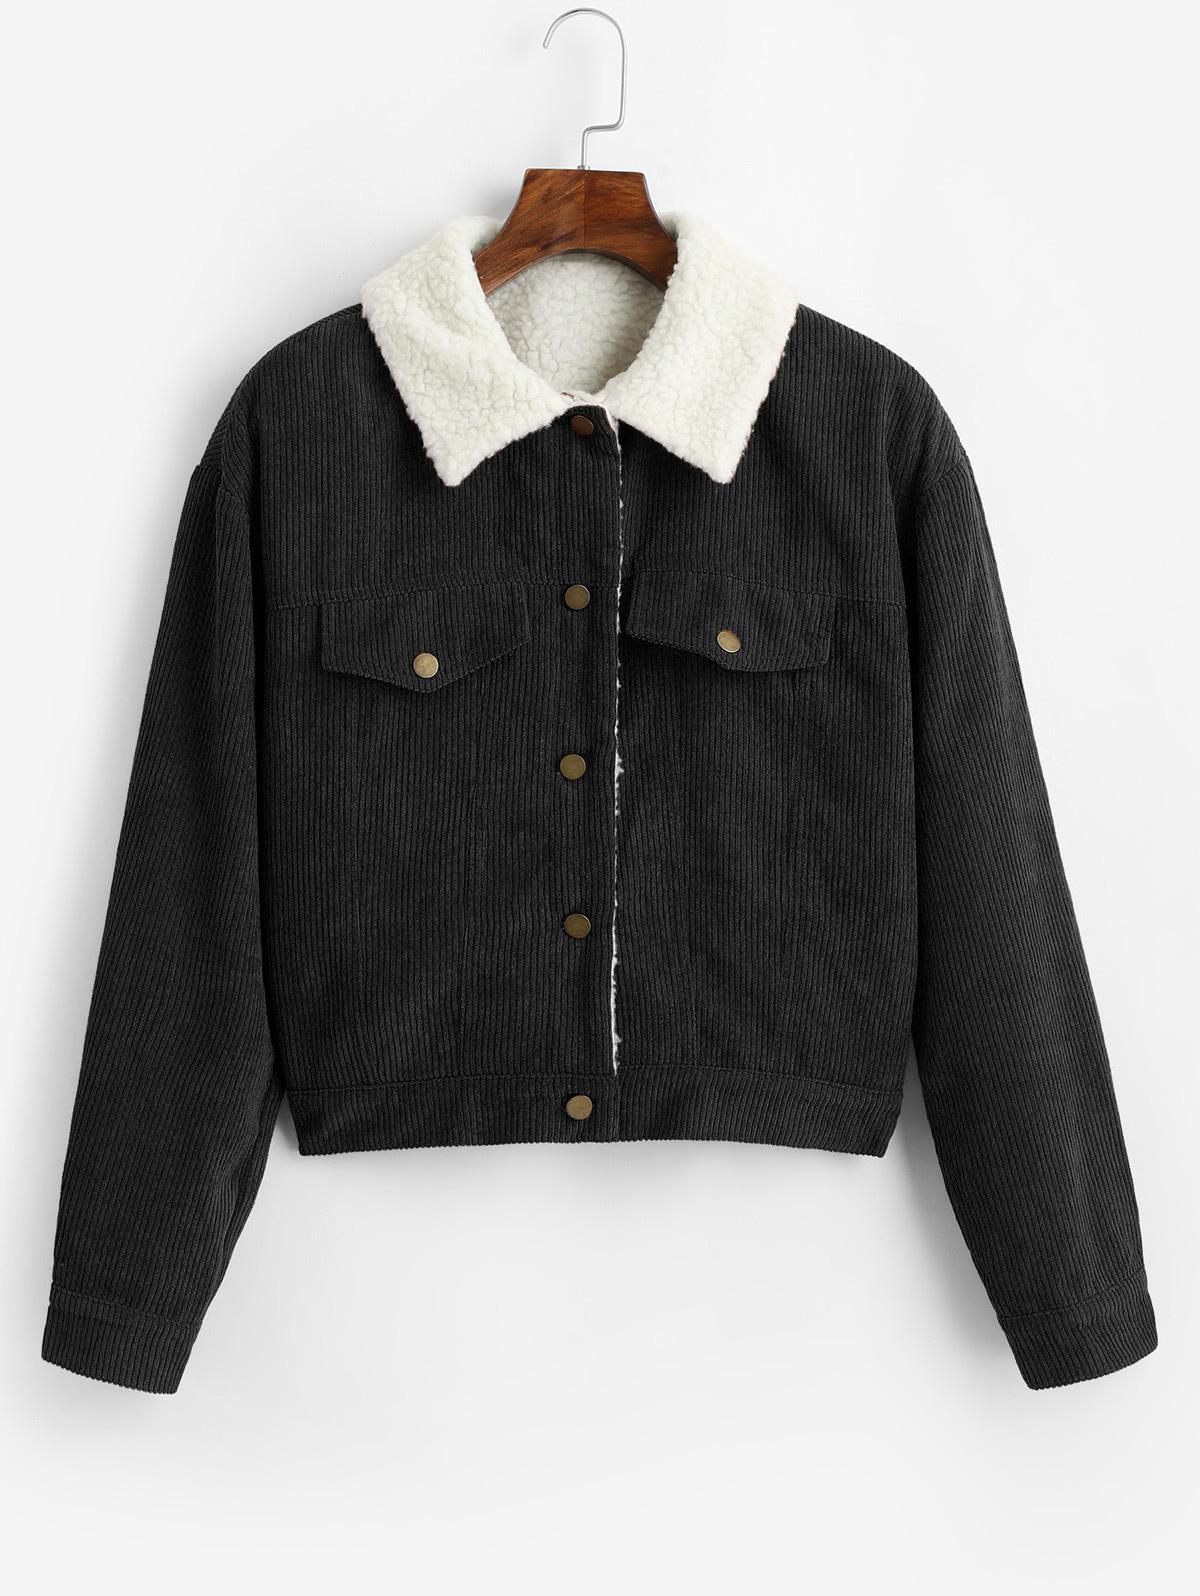 ZAFUL Fuzzy Corduroy Jacket